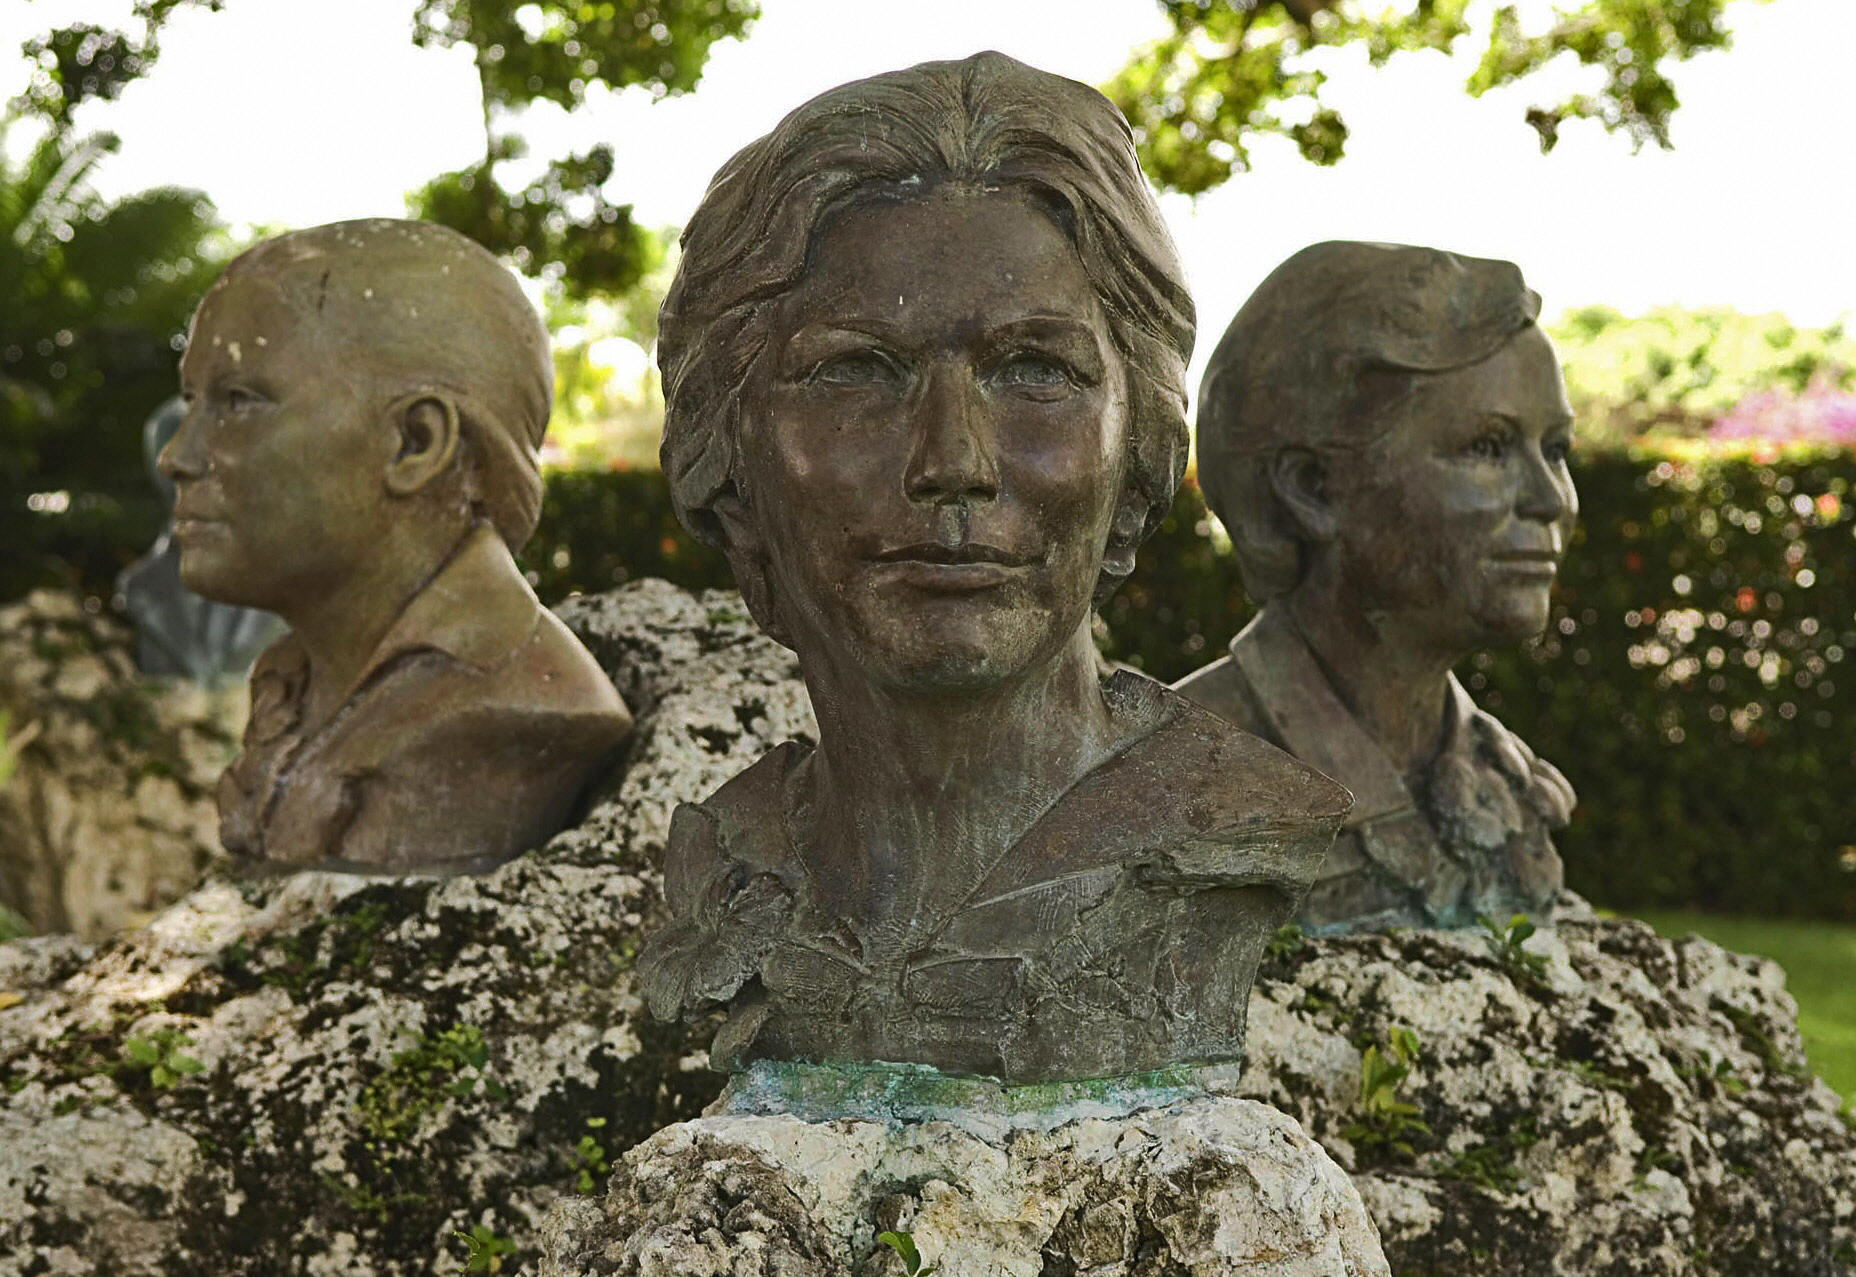 Busts of the Mirabal sisters at the museum in the village of Salcedo, north of Santo Domingo. The Mirabal sisters were assasinated in 1960 during the dictatorial regime of Rafael Trujillo.  (RICARDO HERNANDEZ--AFP/Getty Images)